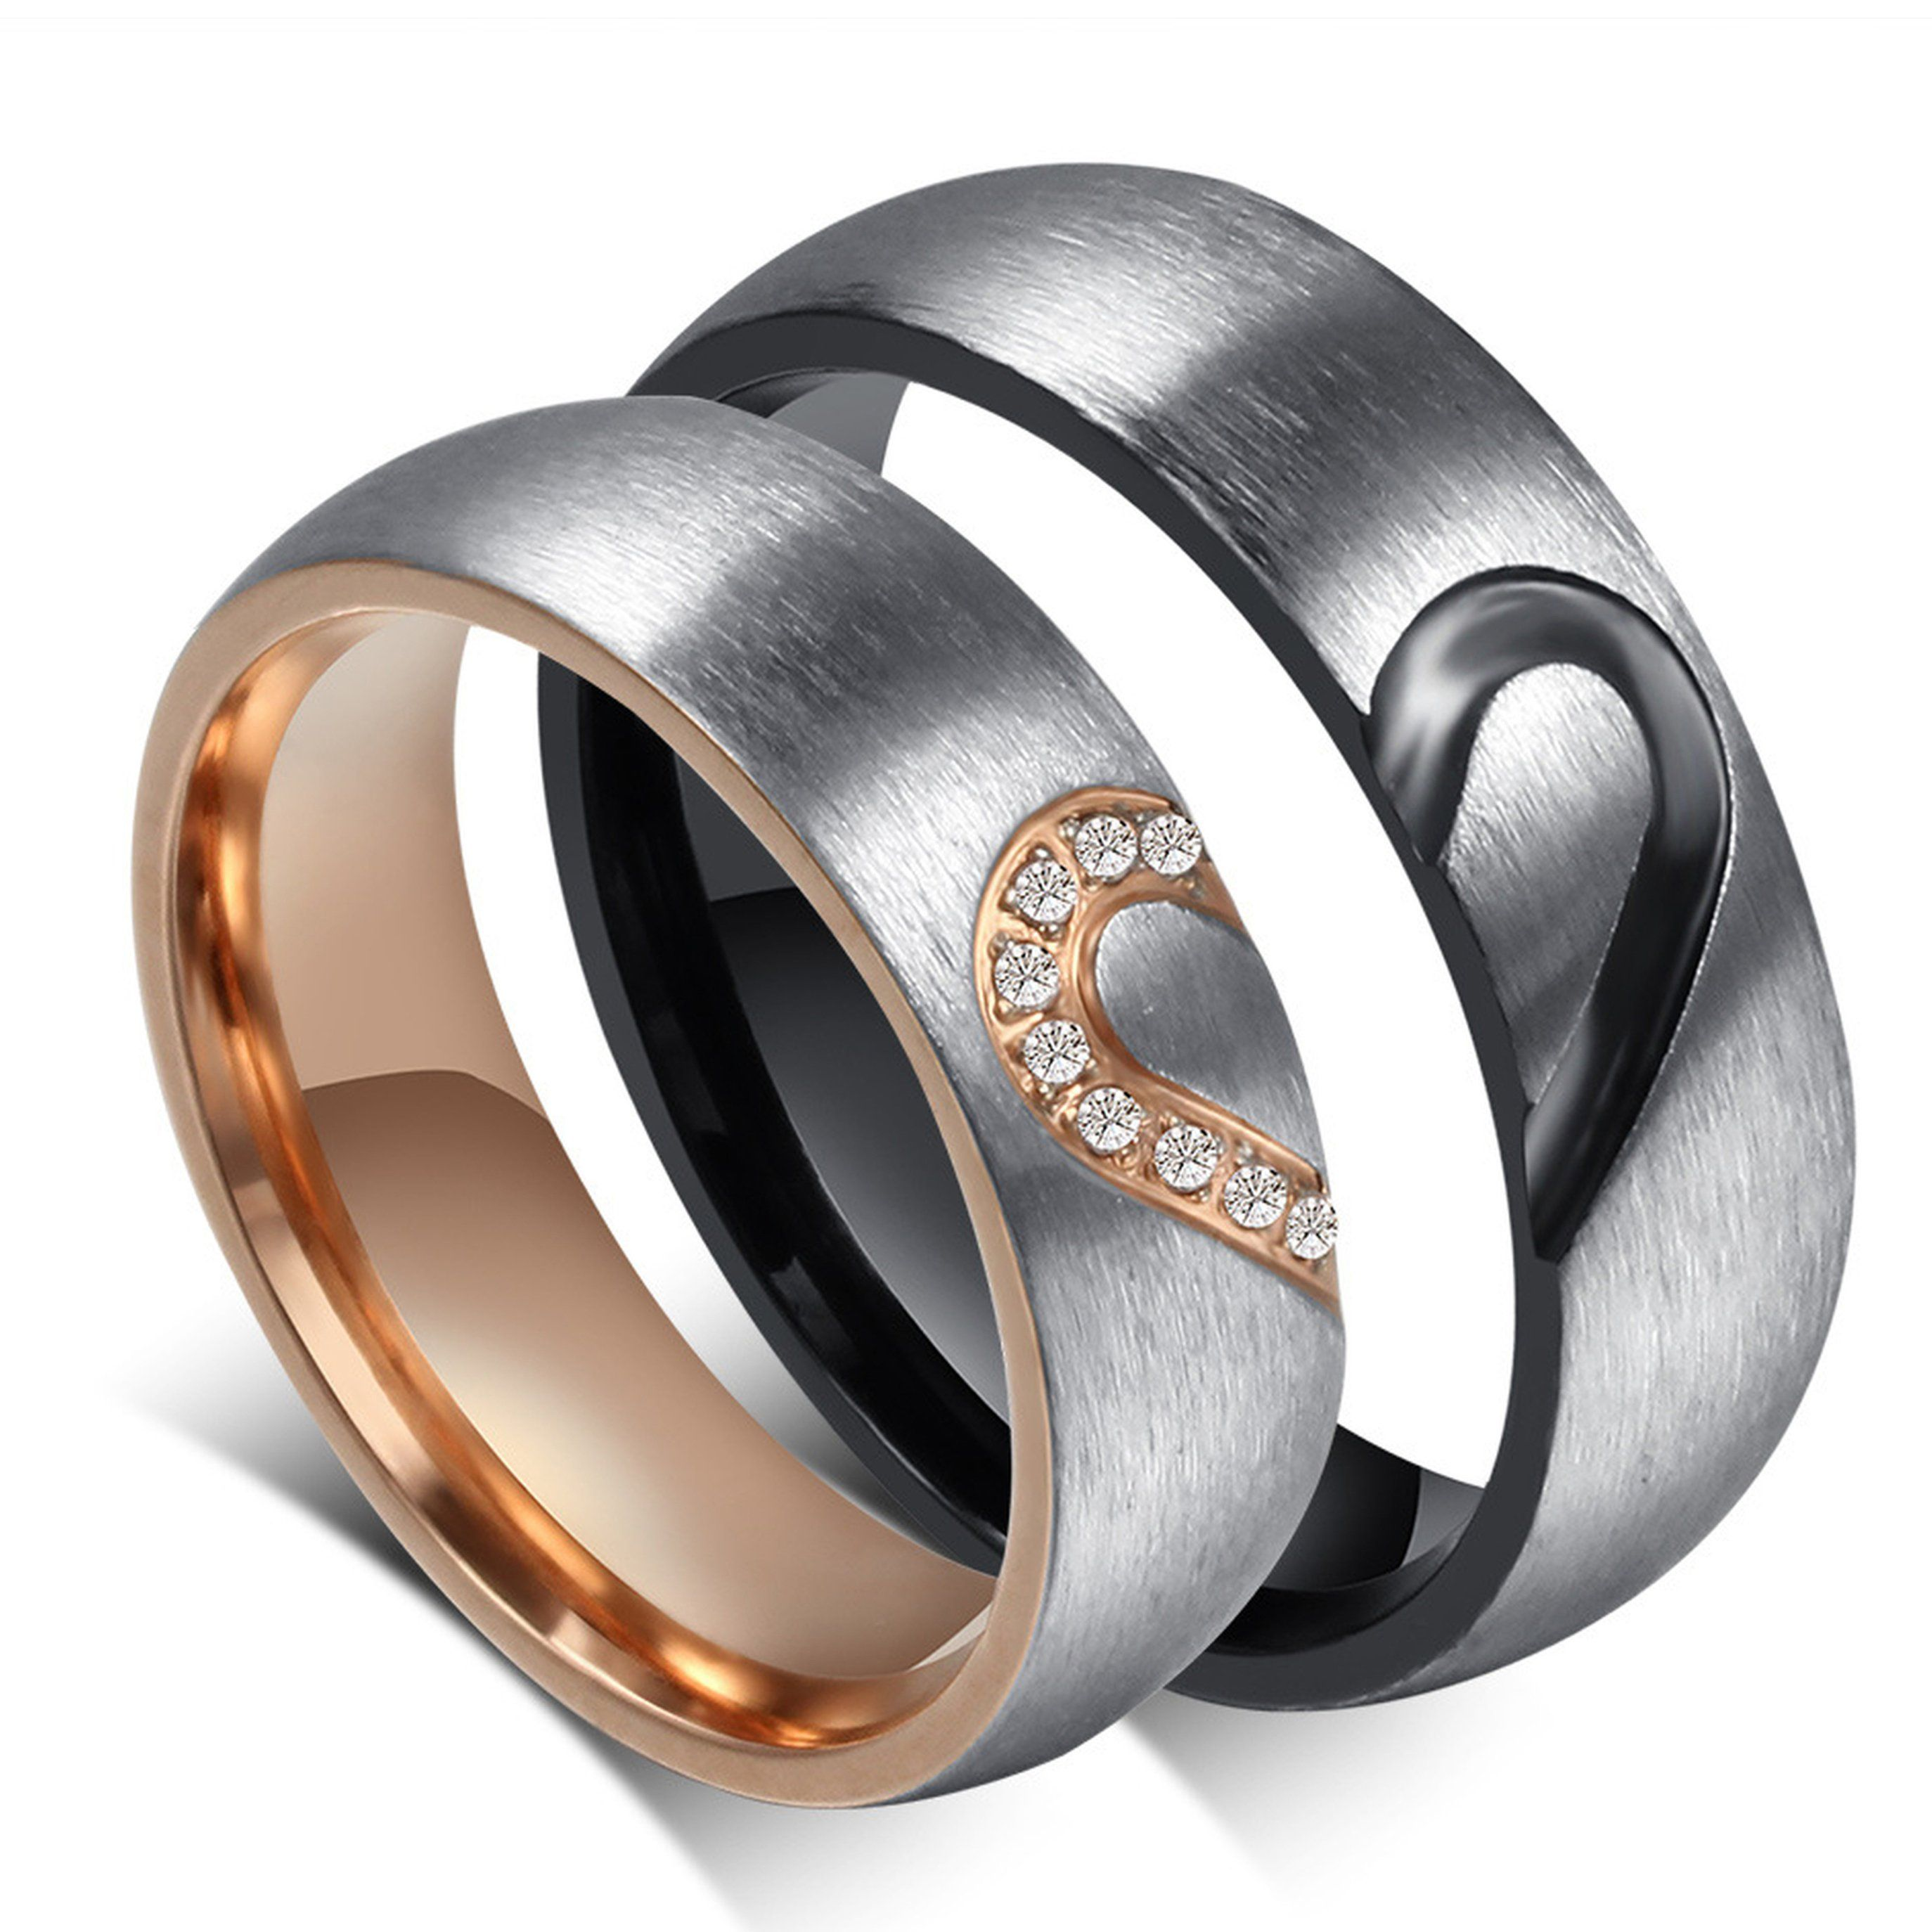 Aij Arcoirisjewelry Couple S Matching Heart Ring His And Her Wedding Band In Stainless Steel For Men And Women Comfort Fit Walmart Com In 2020 Matching Promise Rings Engagement Rings Couple Couples Ring Set